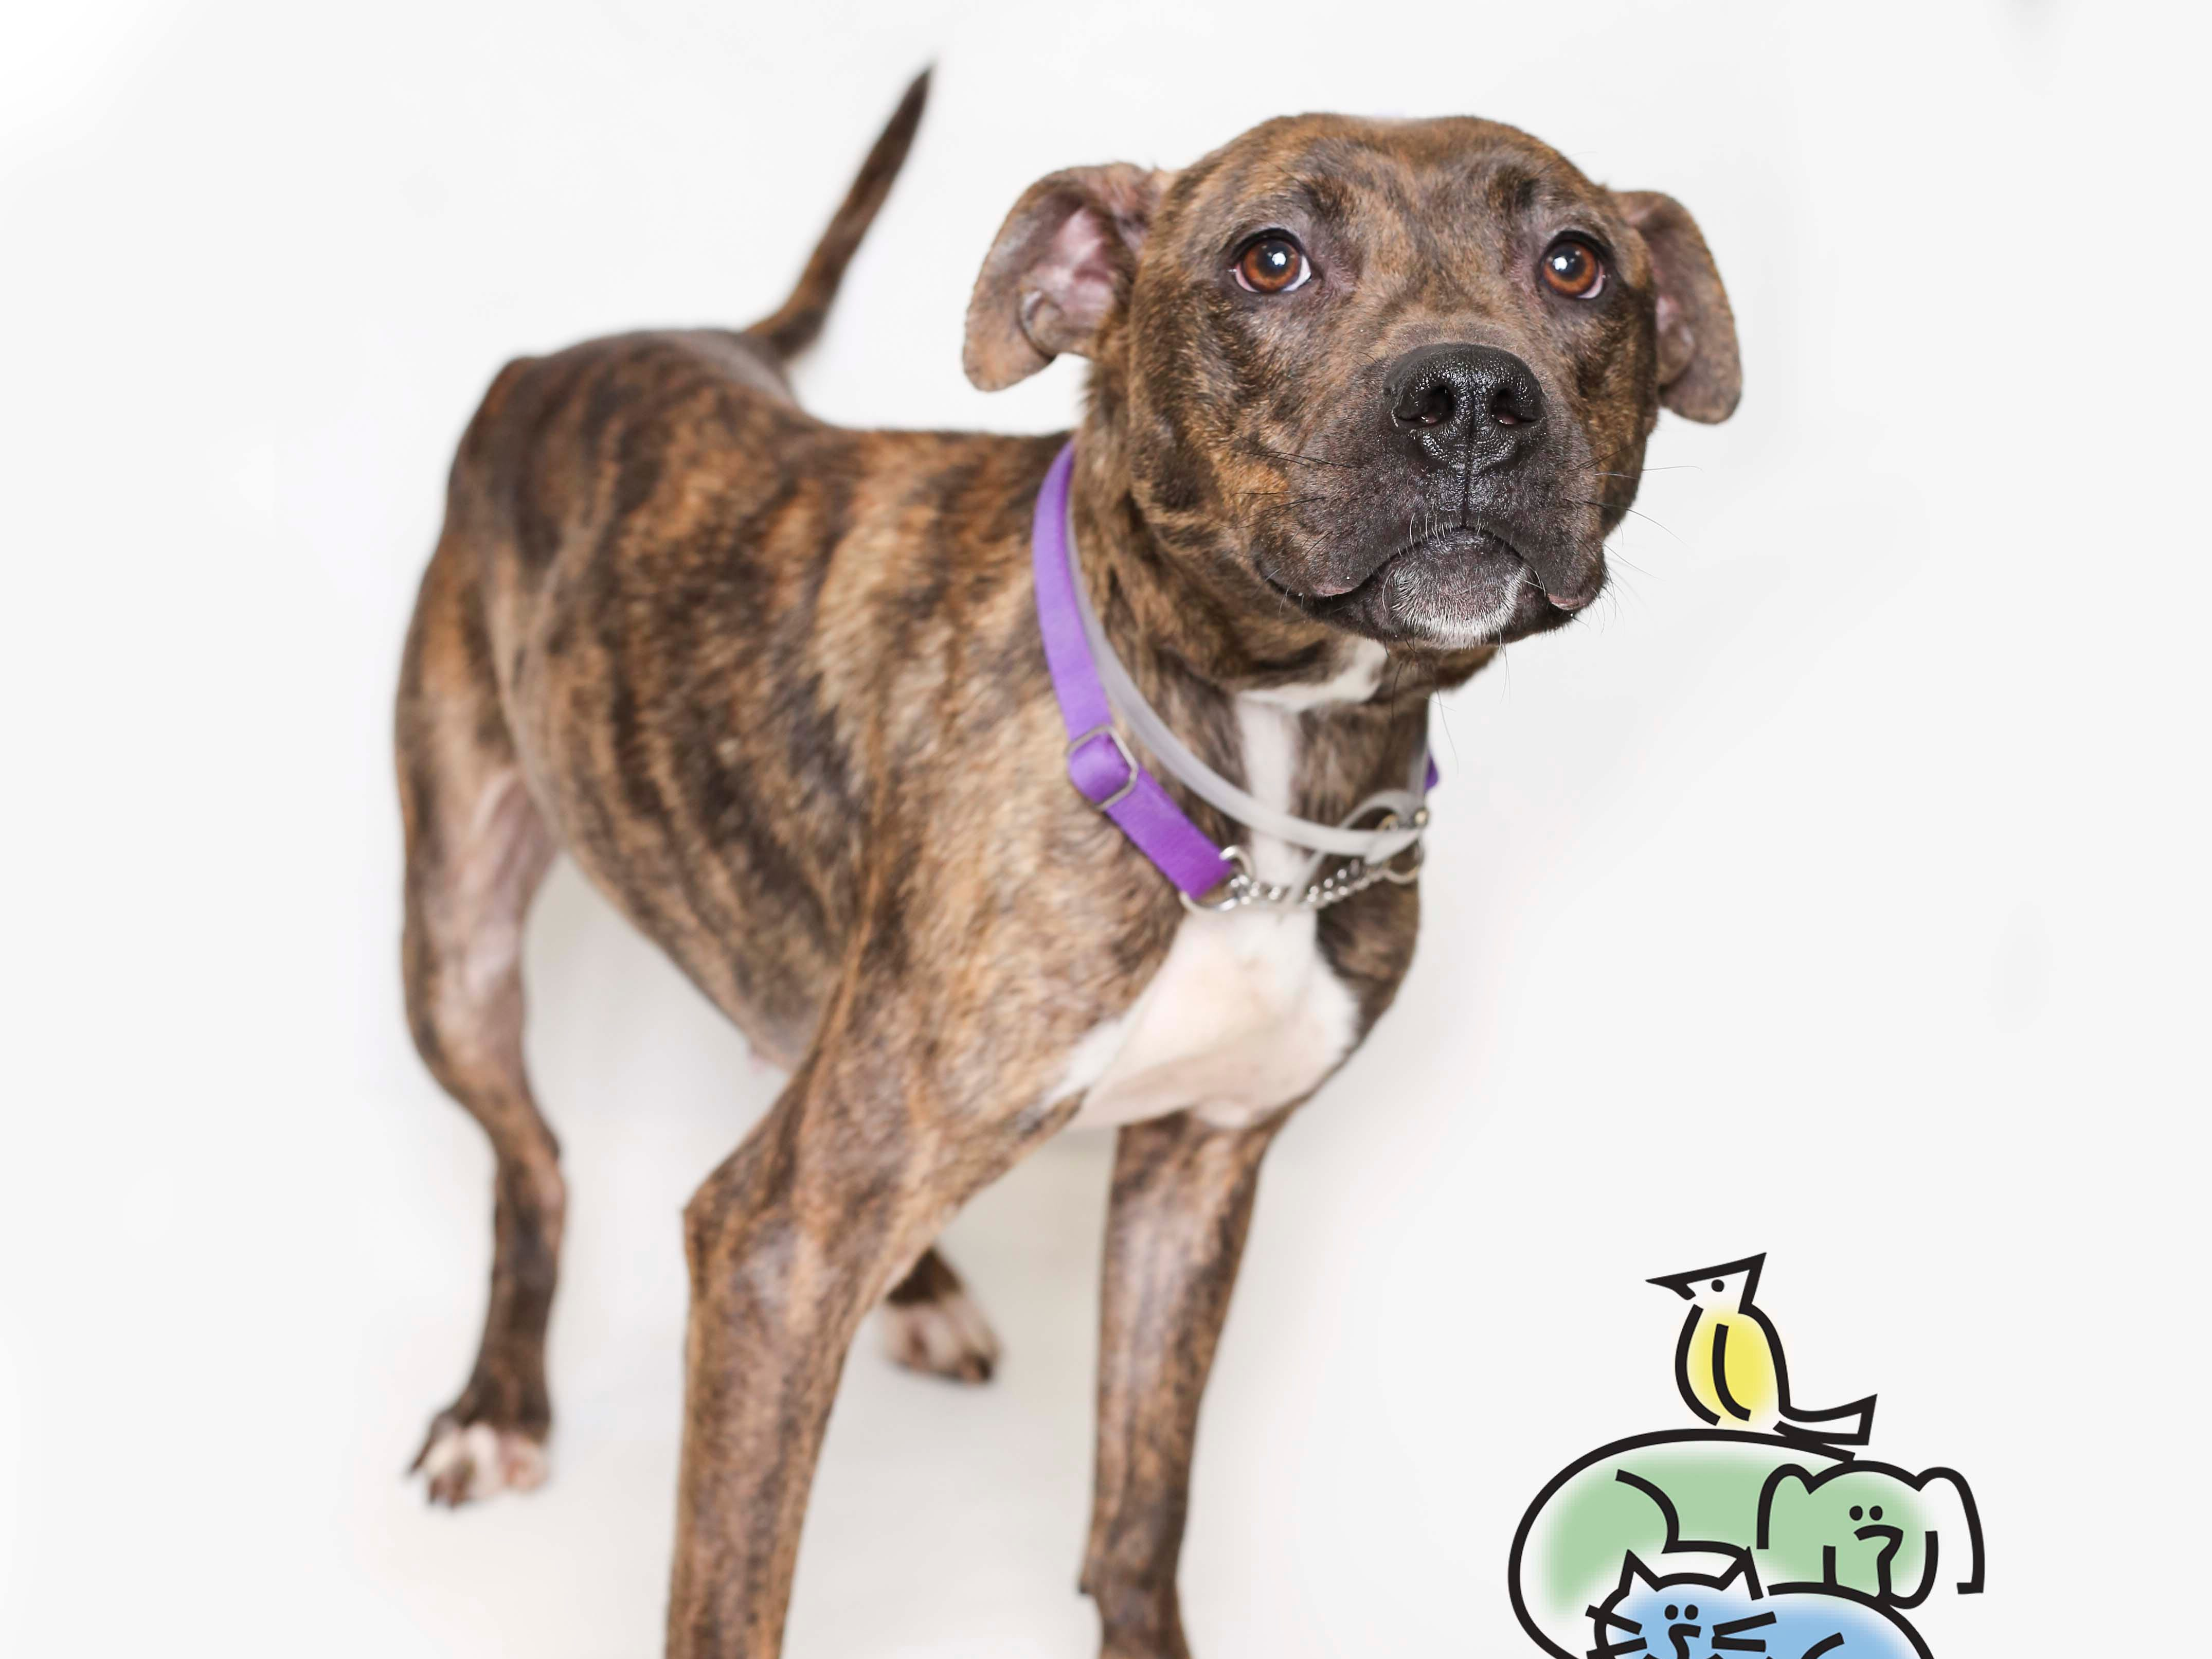 Petunia is up for adoption at Young-Williams animal center on Thursday, March 21, 2019.